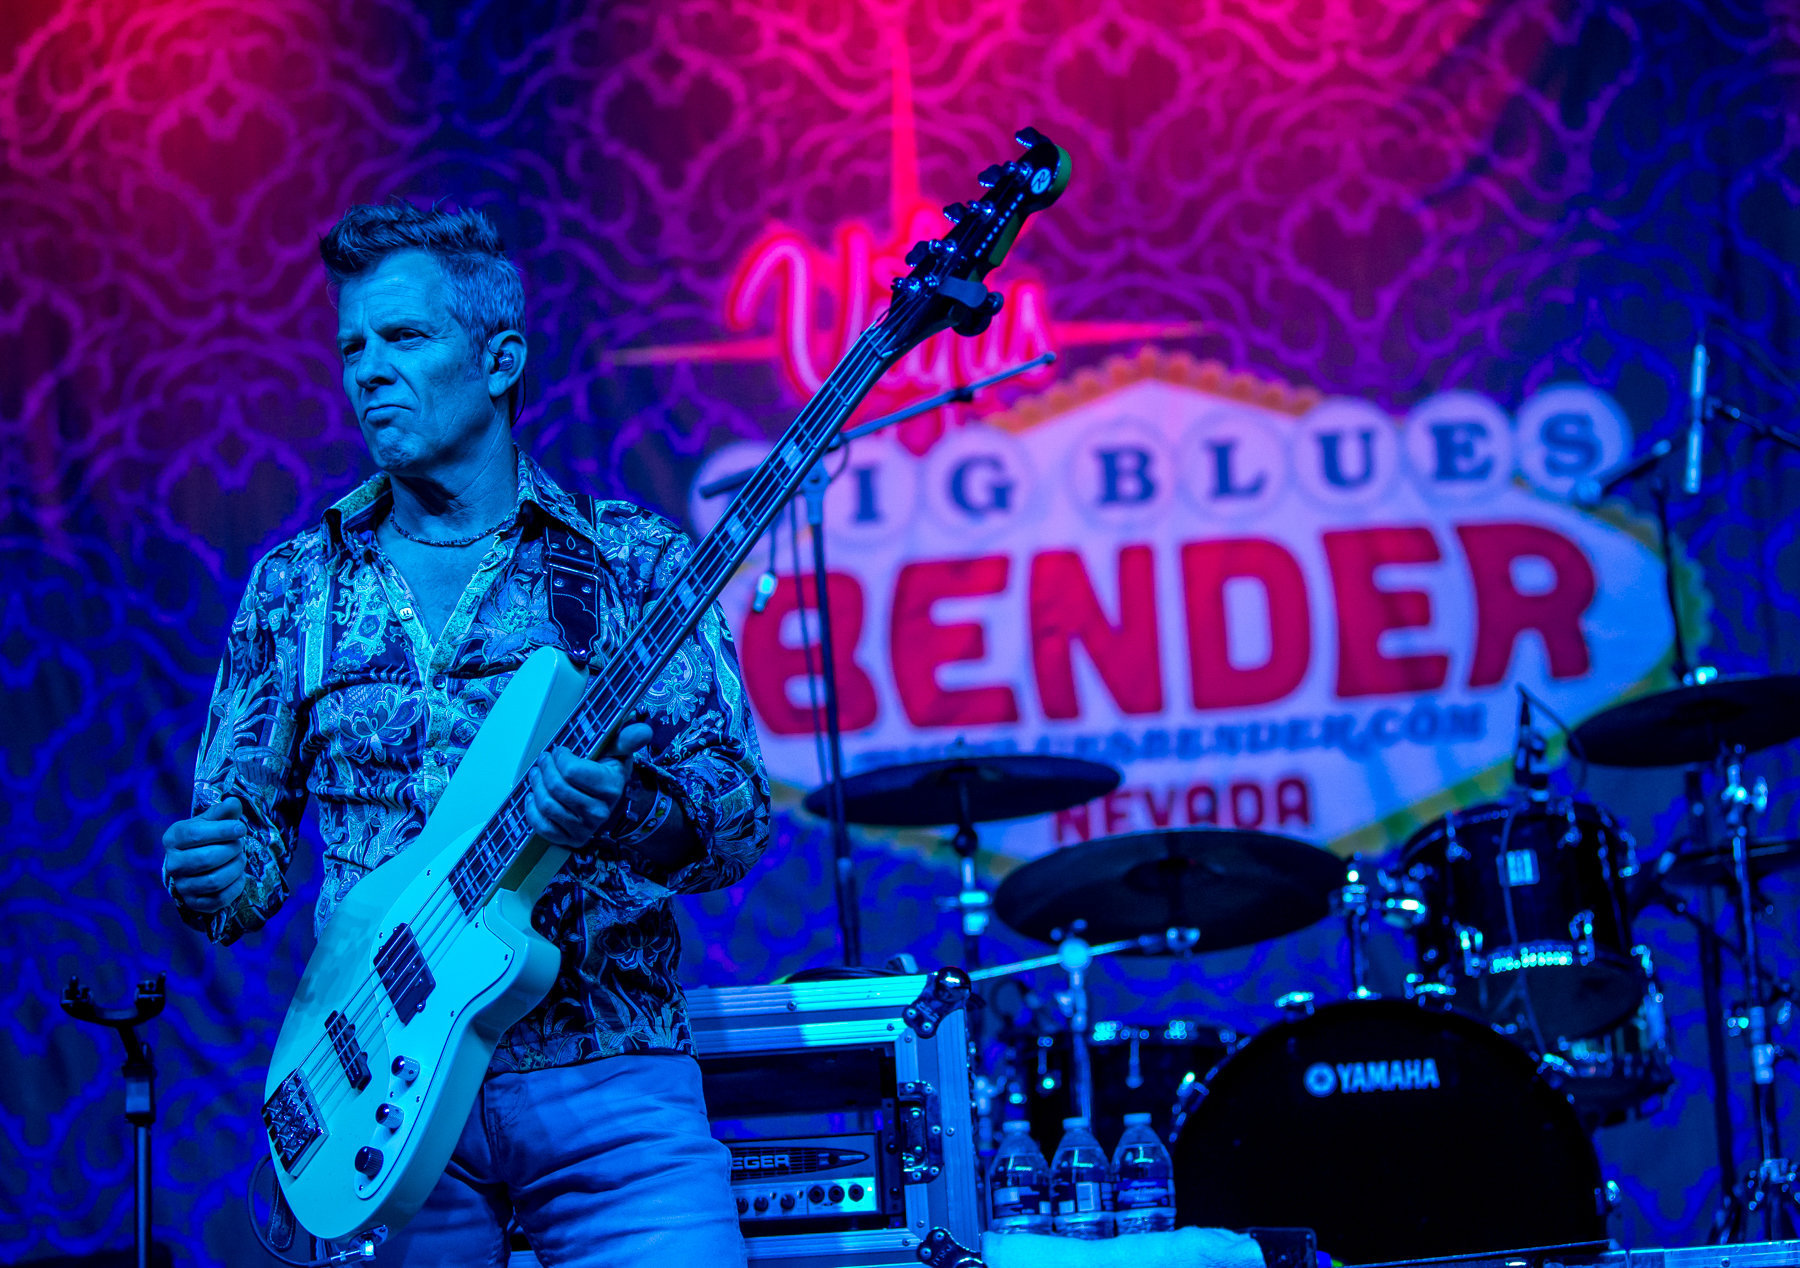 9_25_14_c_blues_bender_kabik-444.jpg